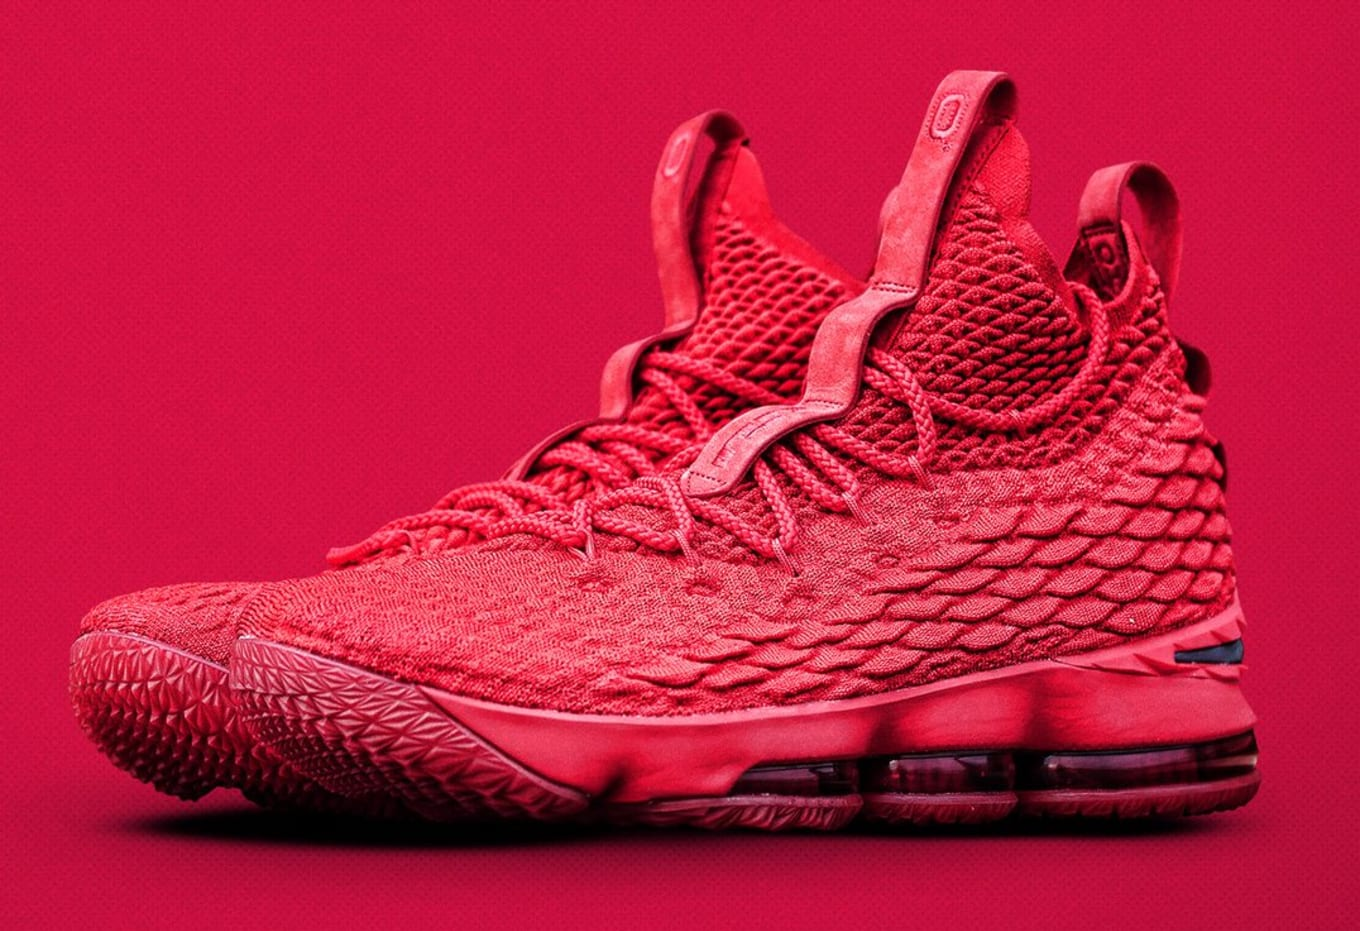 5f480e314ab More Exclusive LeBrons for Ohio State. All-red 15s for  Beat Michigan   weekend.